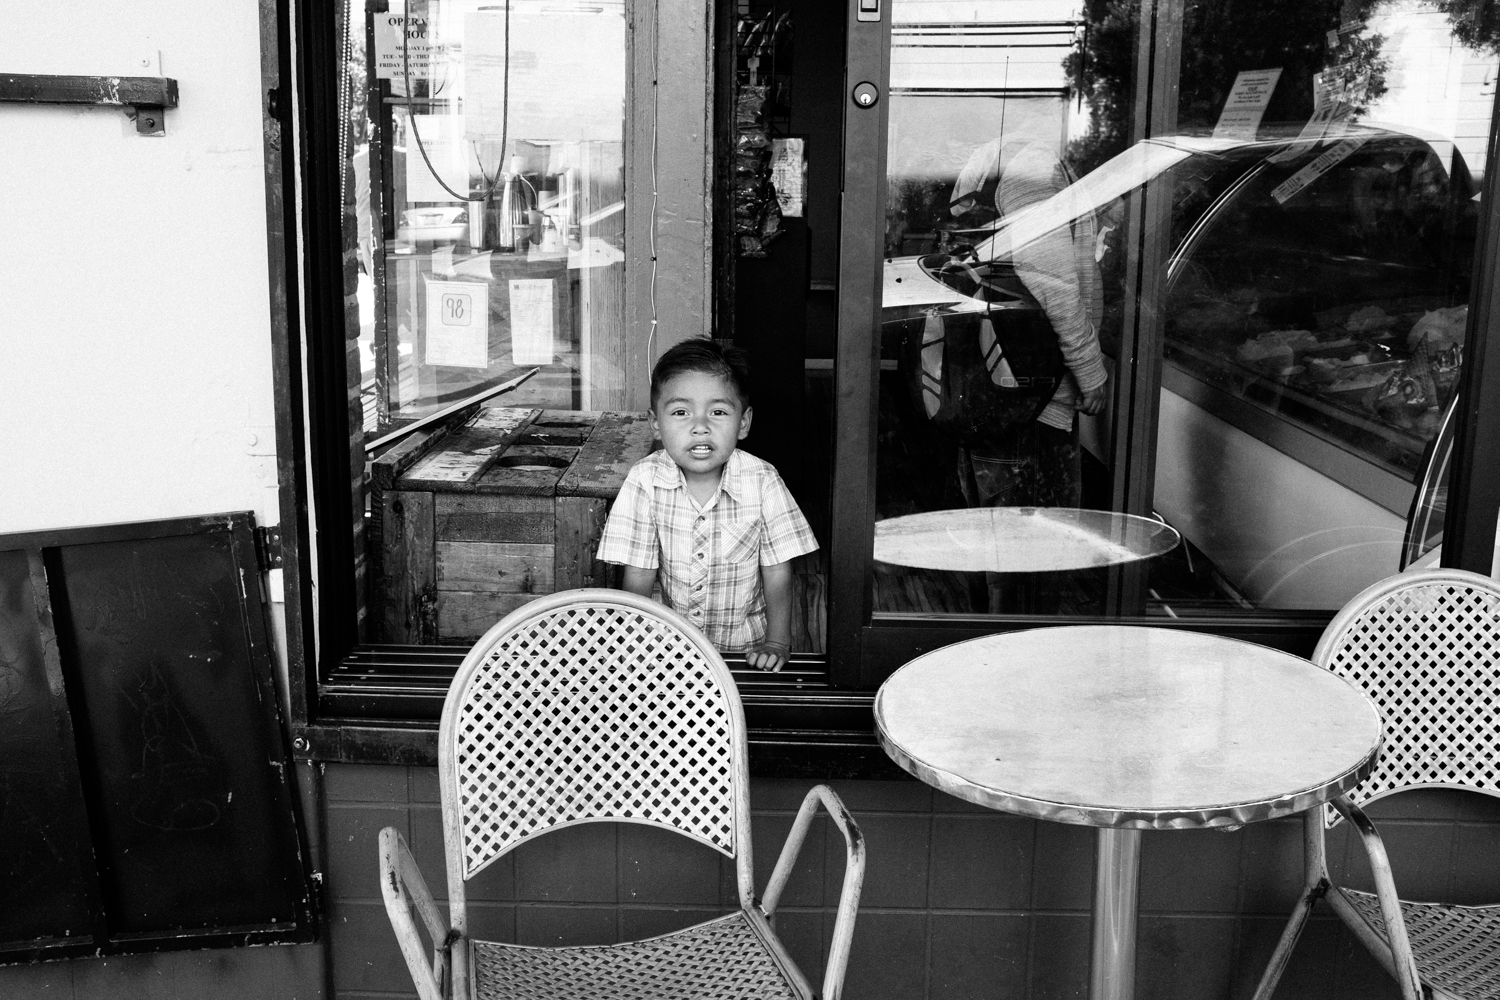 Henry Huynh, Street, Street Photographer, Travel Photographer, Travel-6